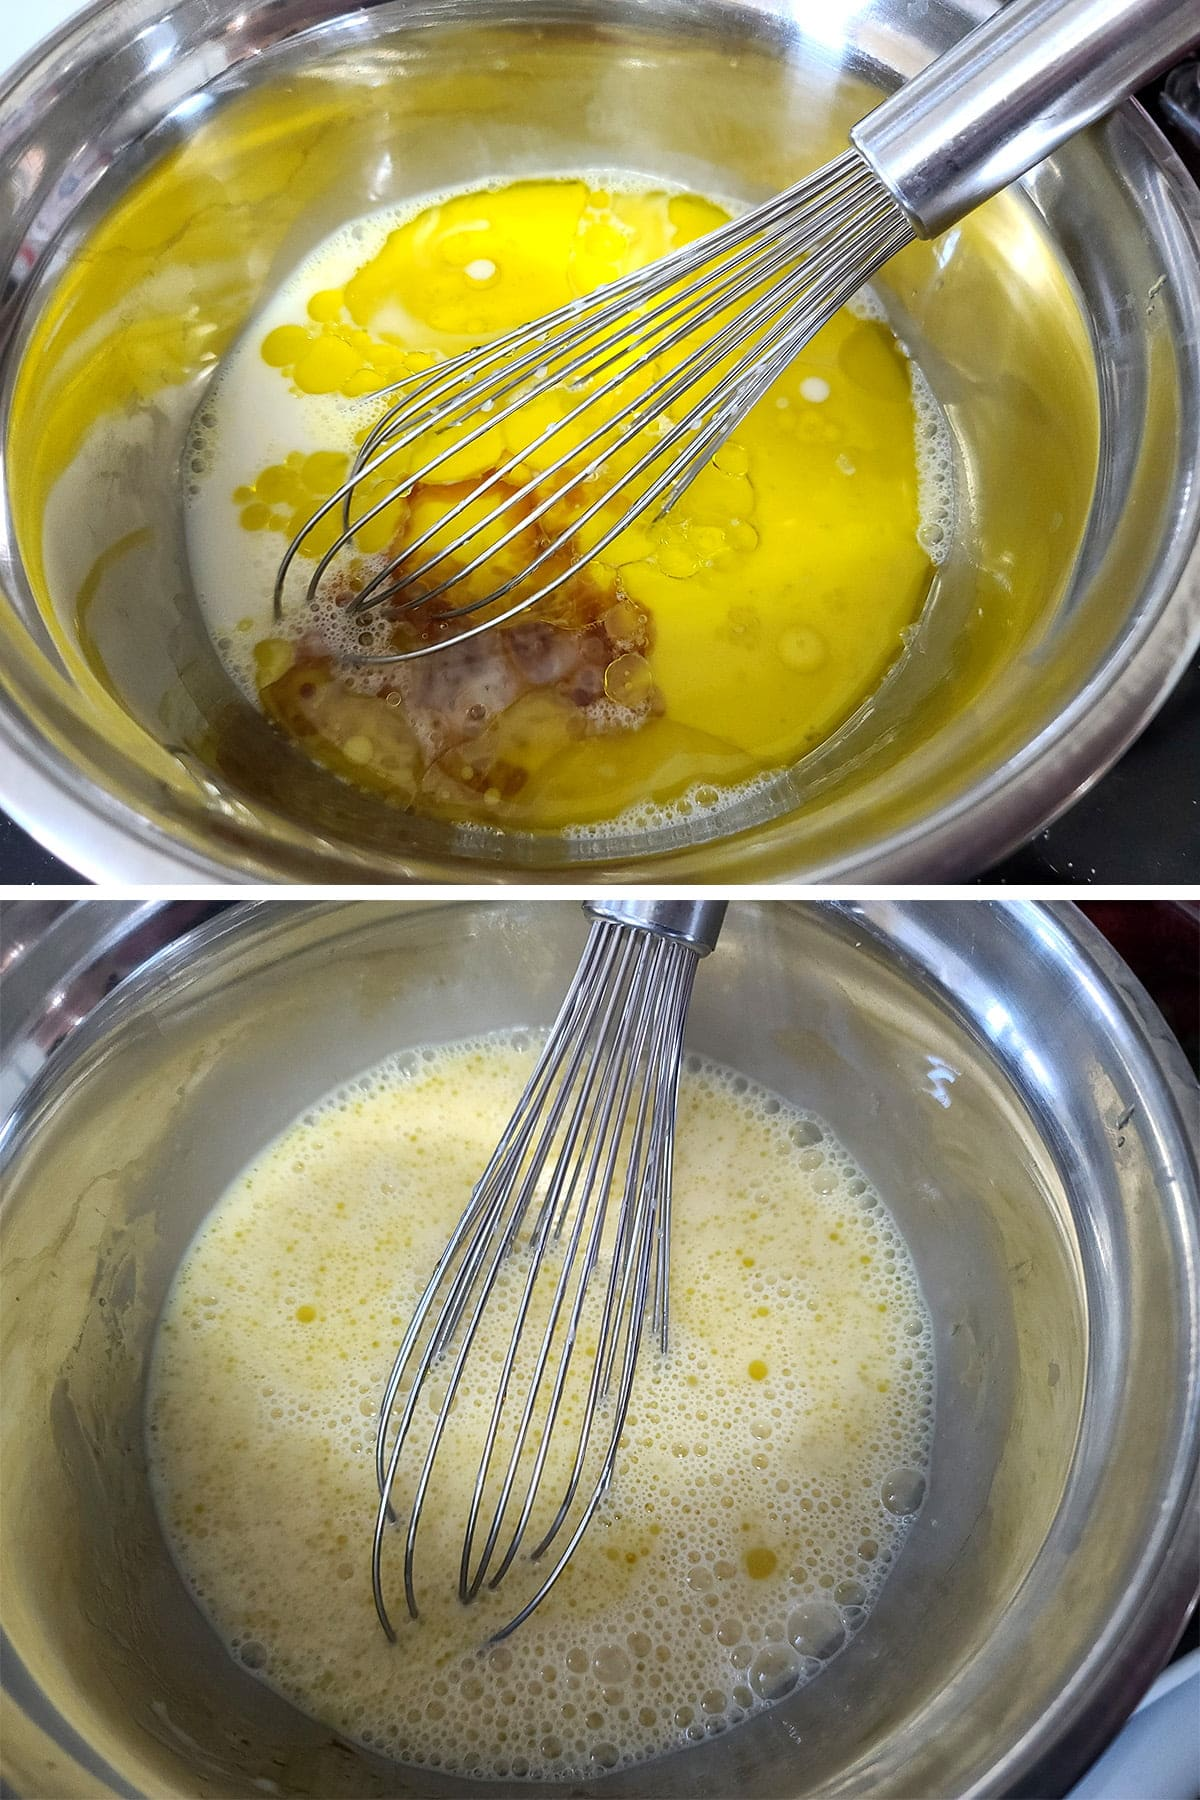 A two part compilation image showing the wet ingrediients in a stainless steel mixing bowl, before and after being whisked together.